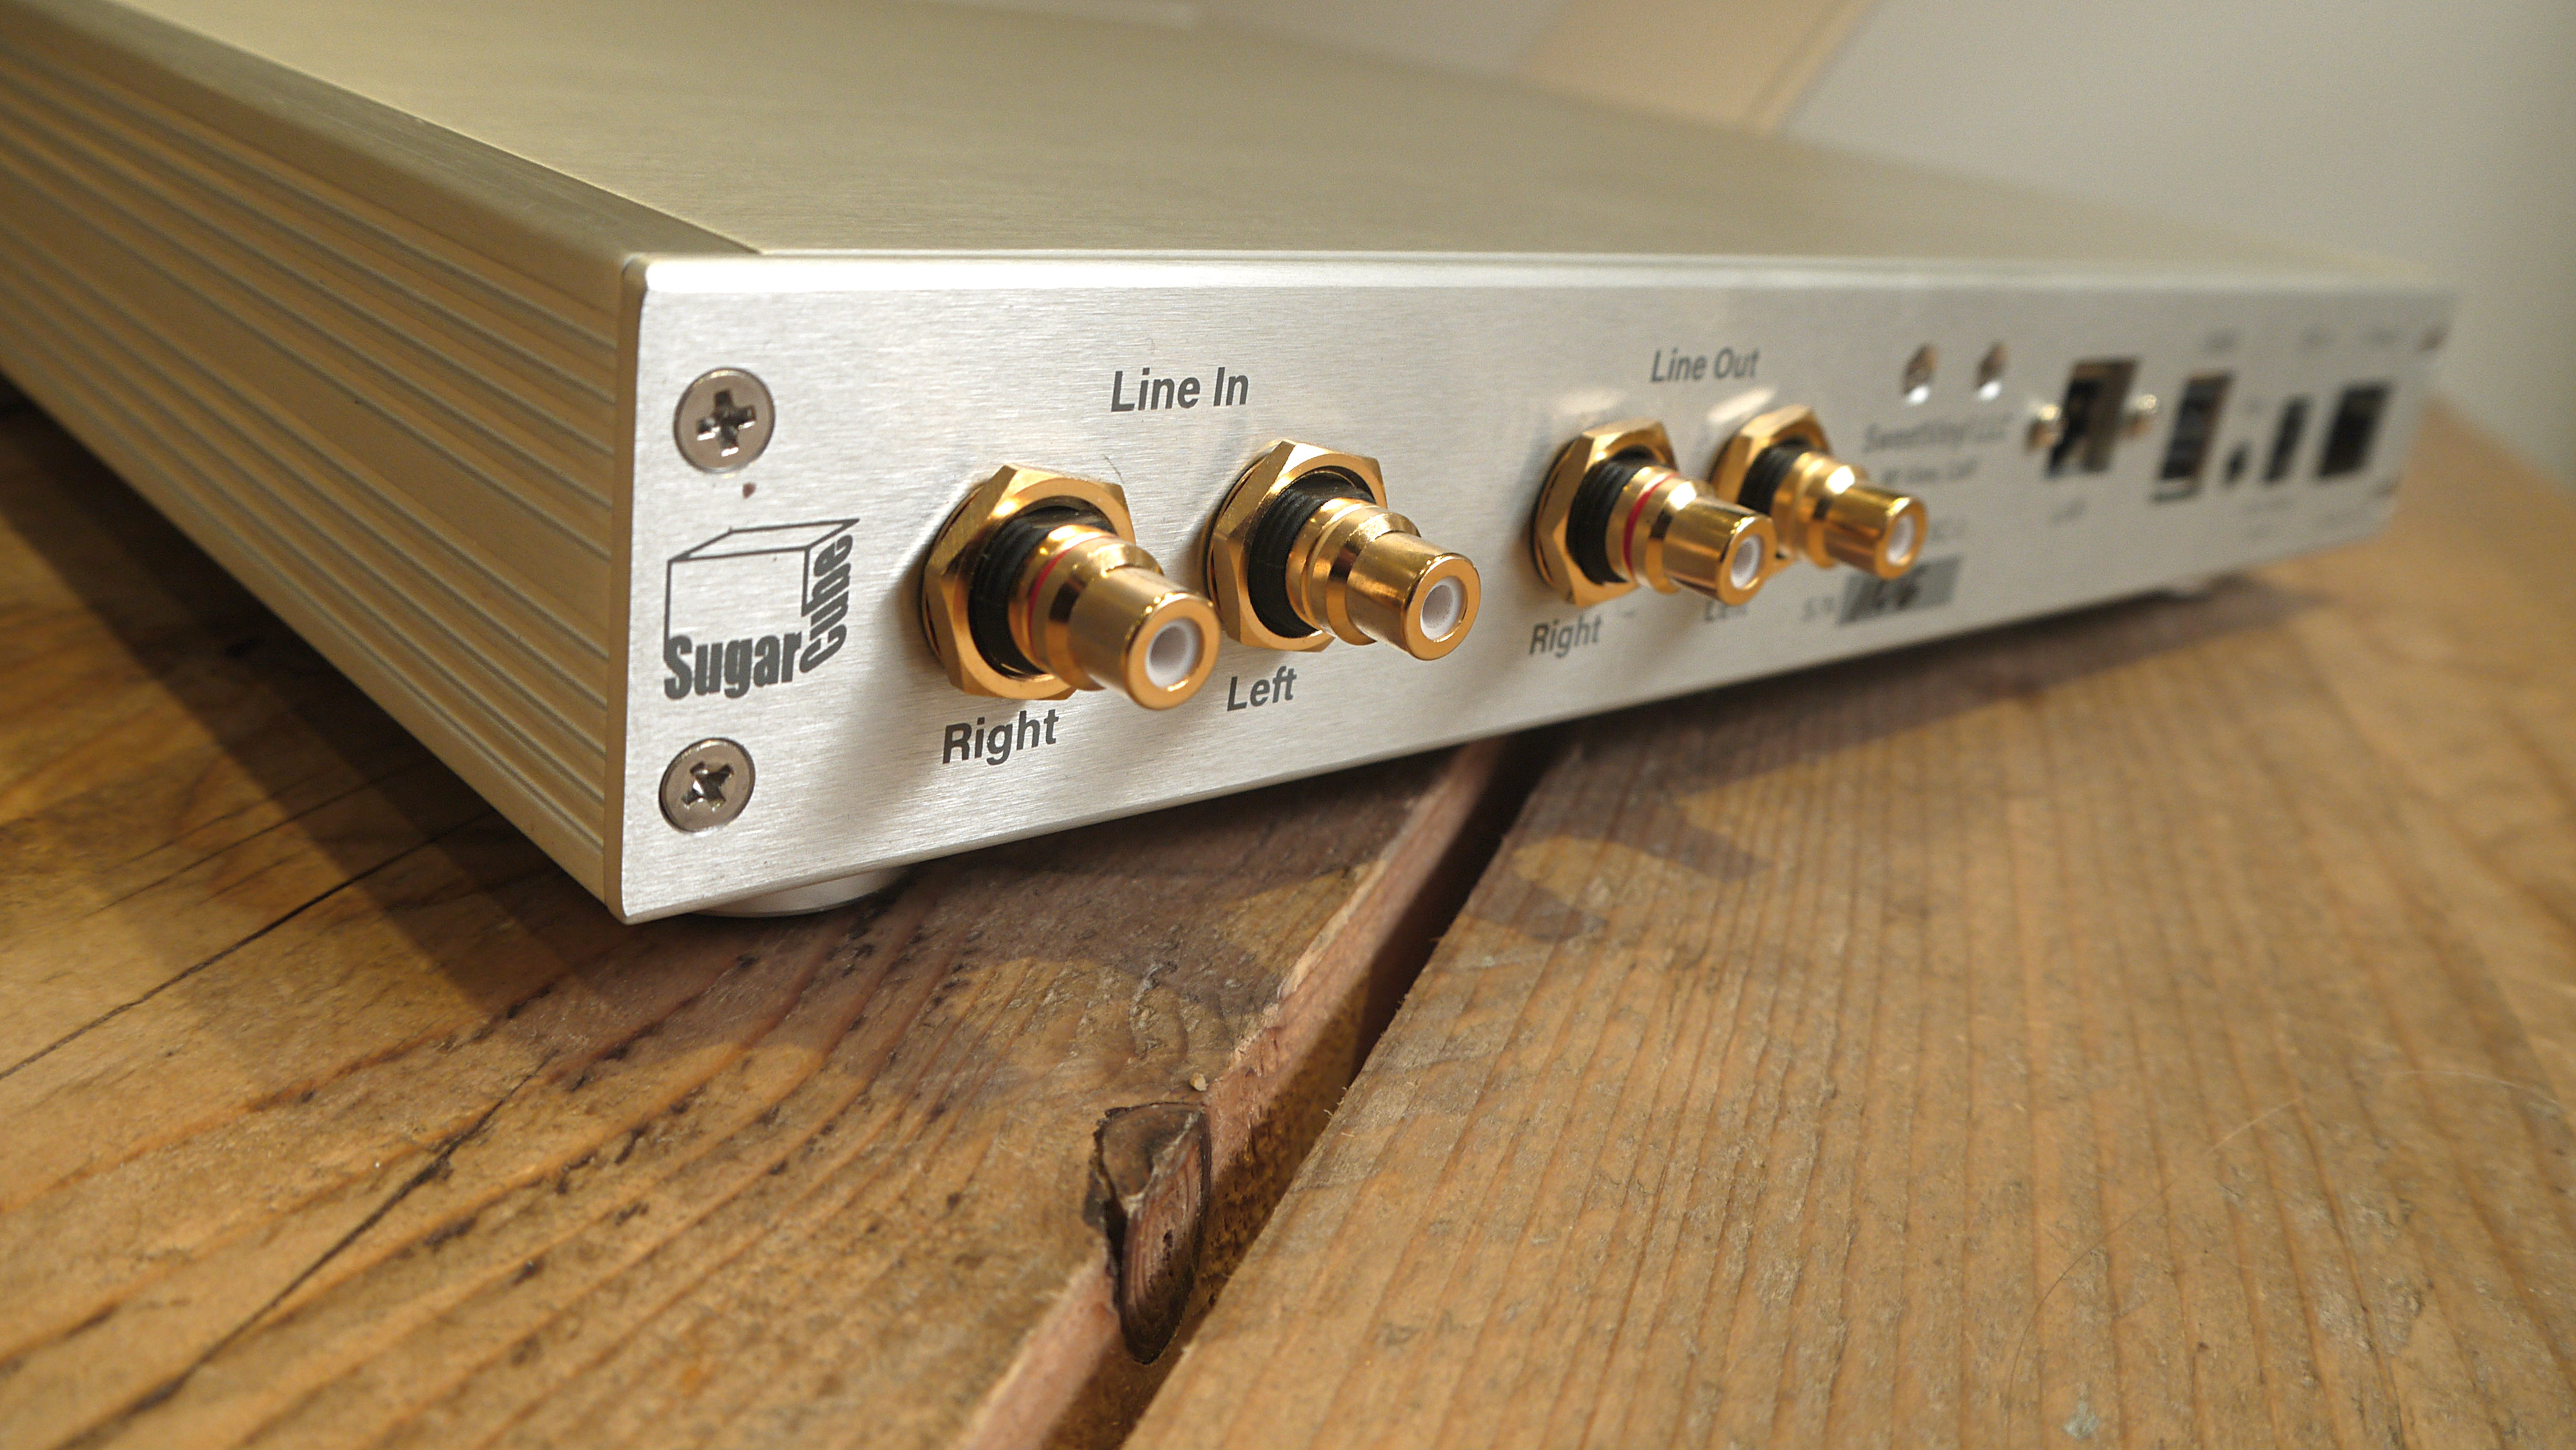 Sweetvinyl S Sc 1 Makes Your Old Records Sound Brand New